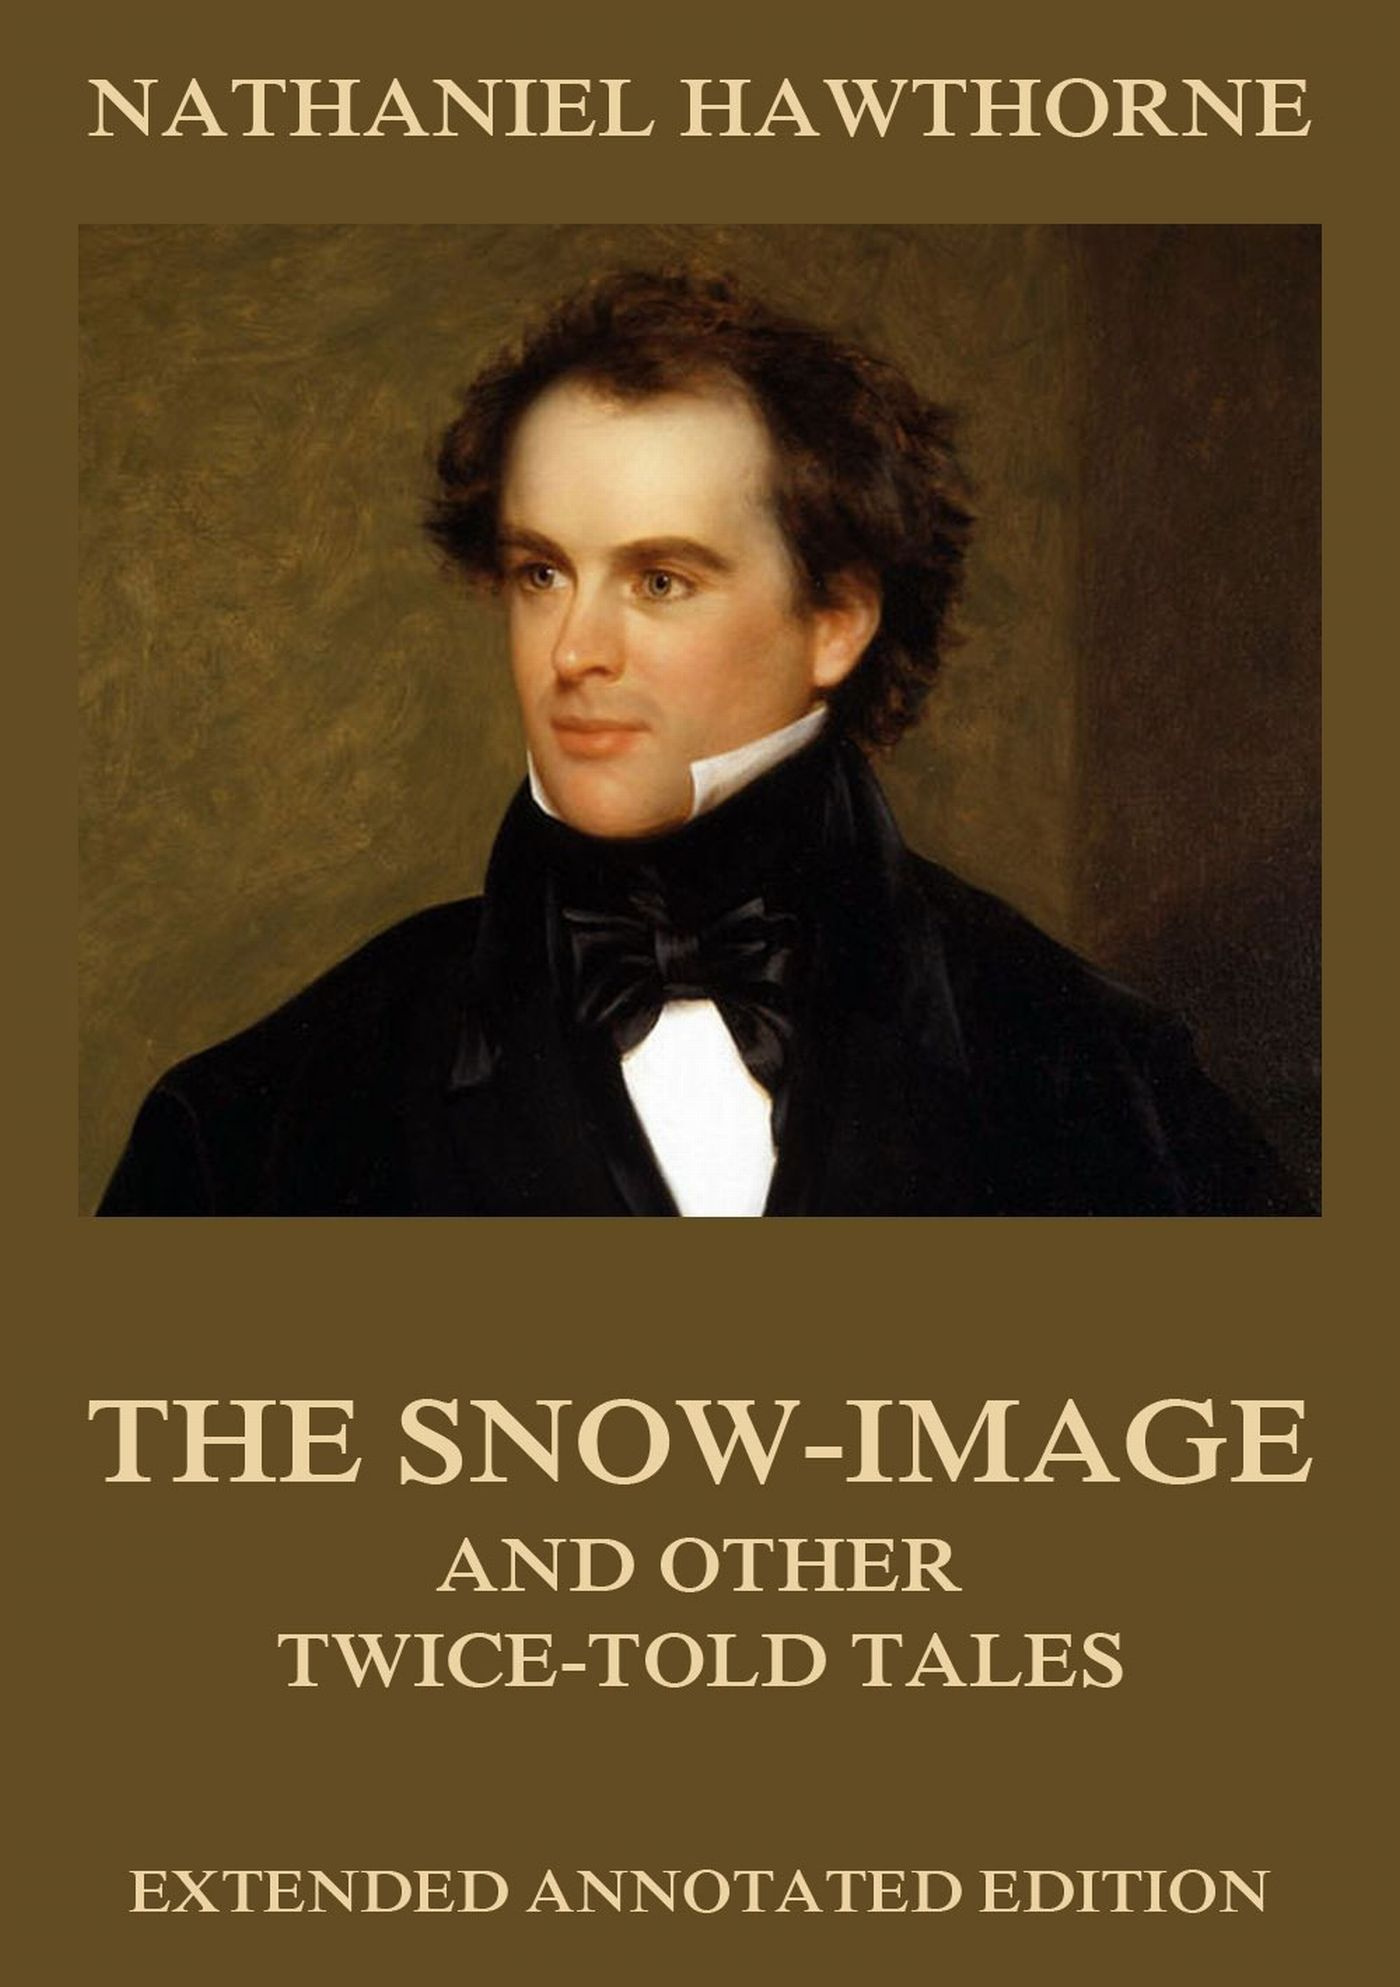 Nathaniel Hawthorne The Snow-Image, And Other Twice-Told Tales